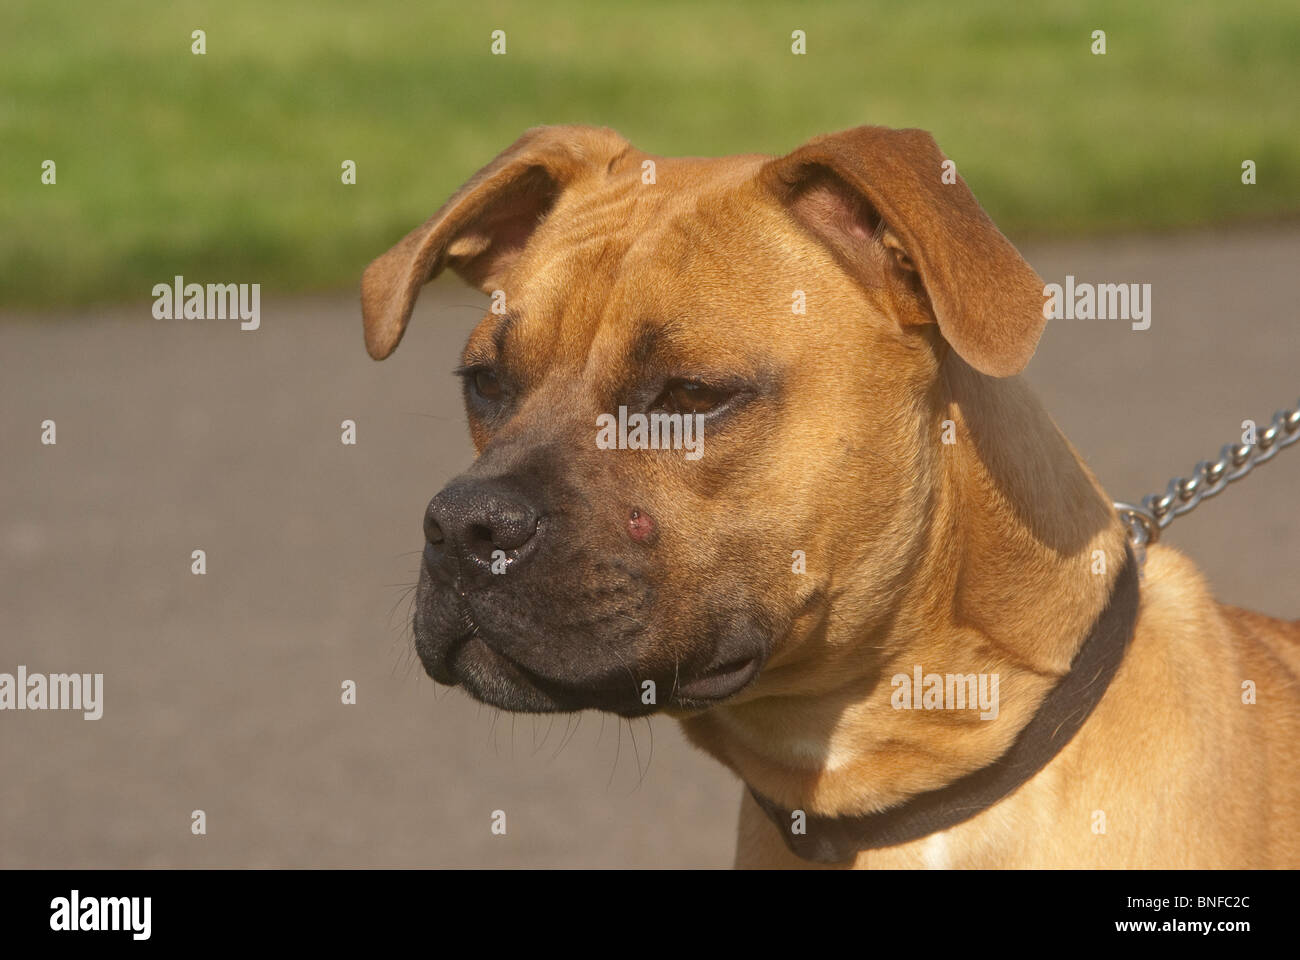 pitbull dog head and neck in half profile - Stock Image